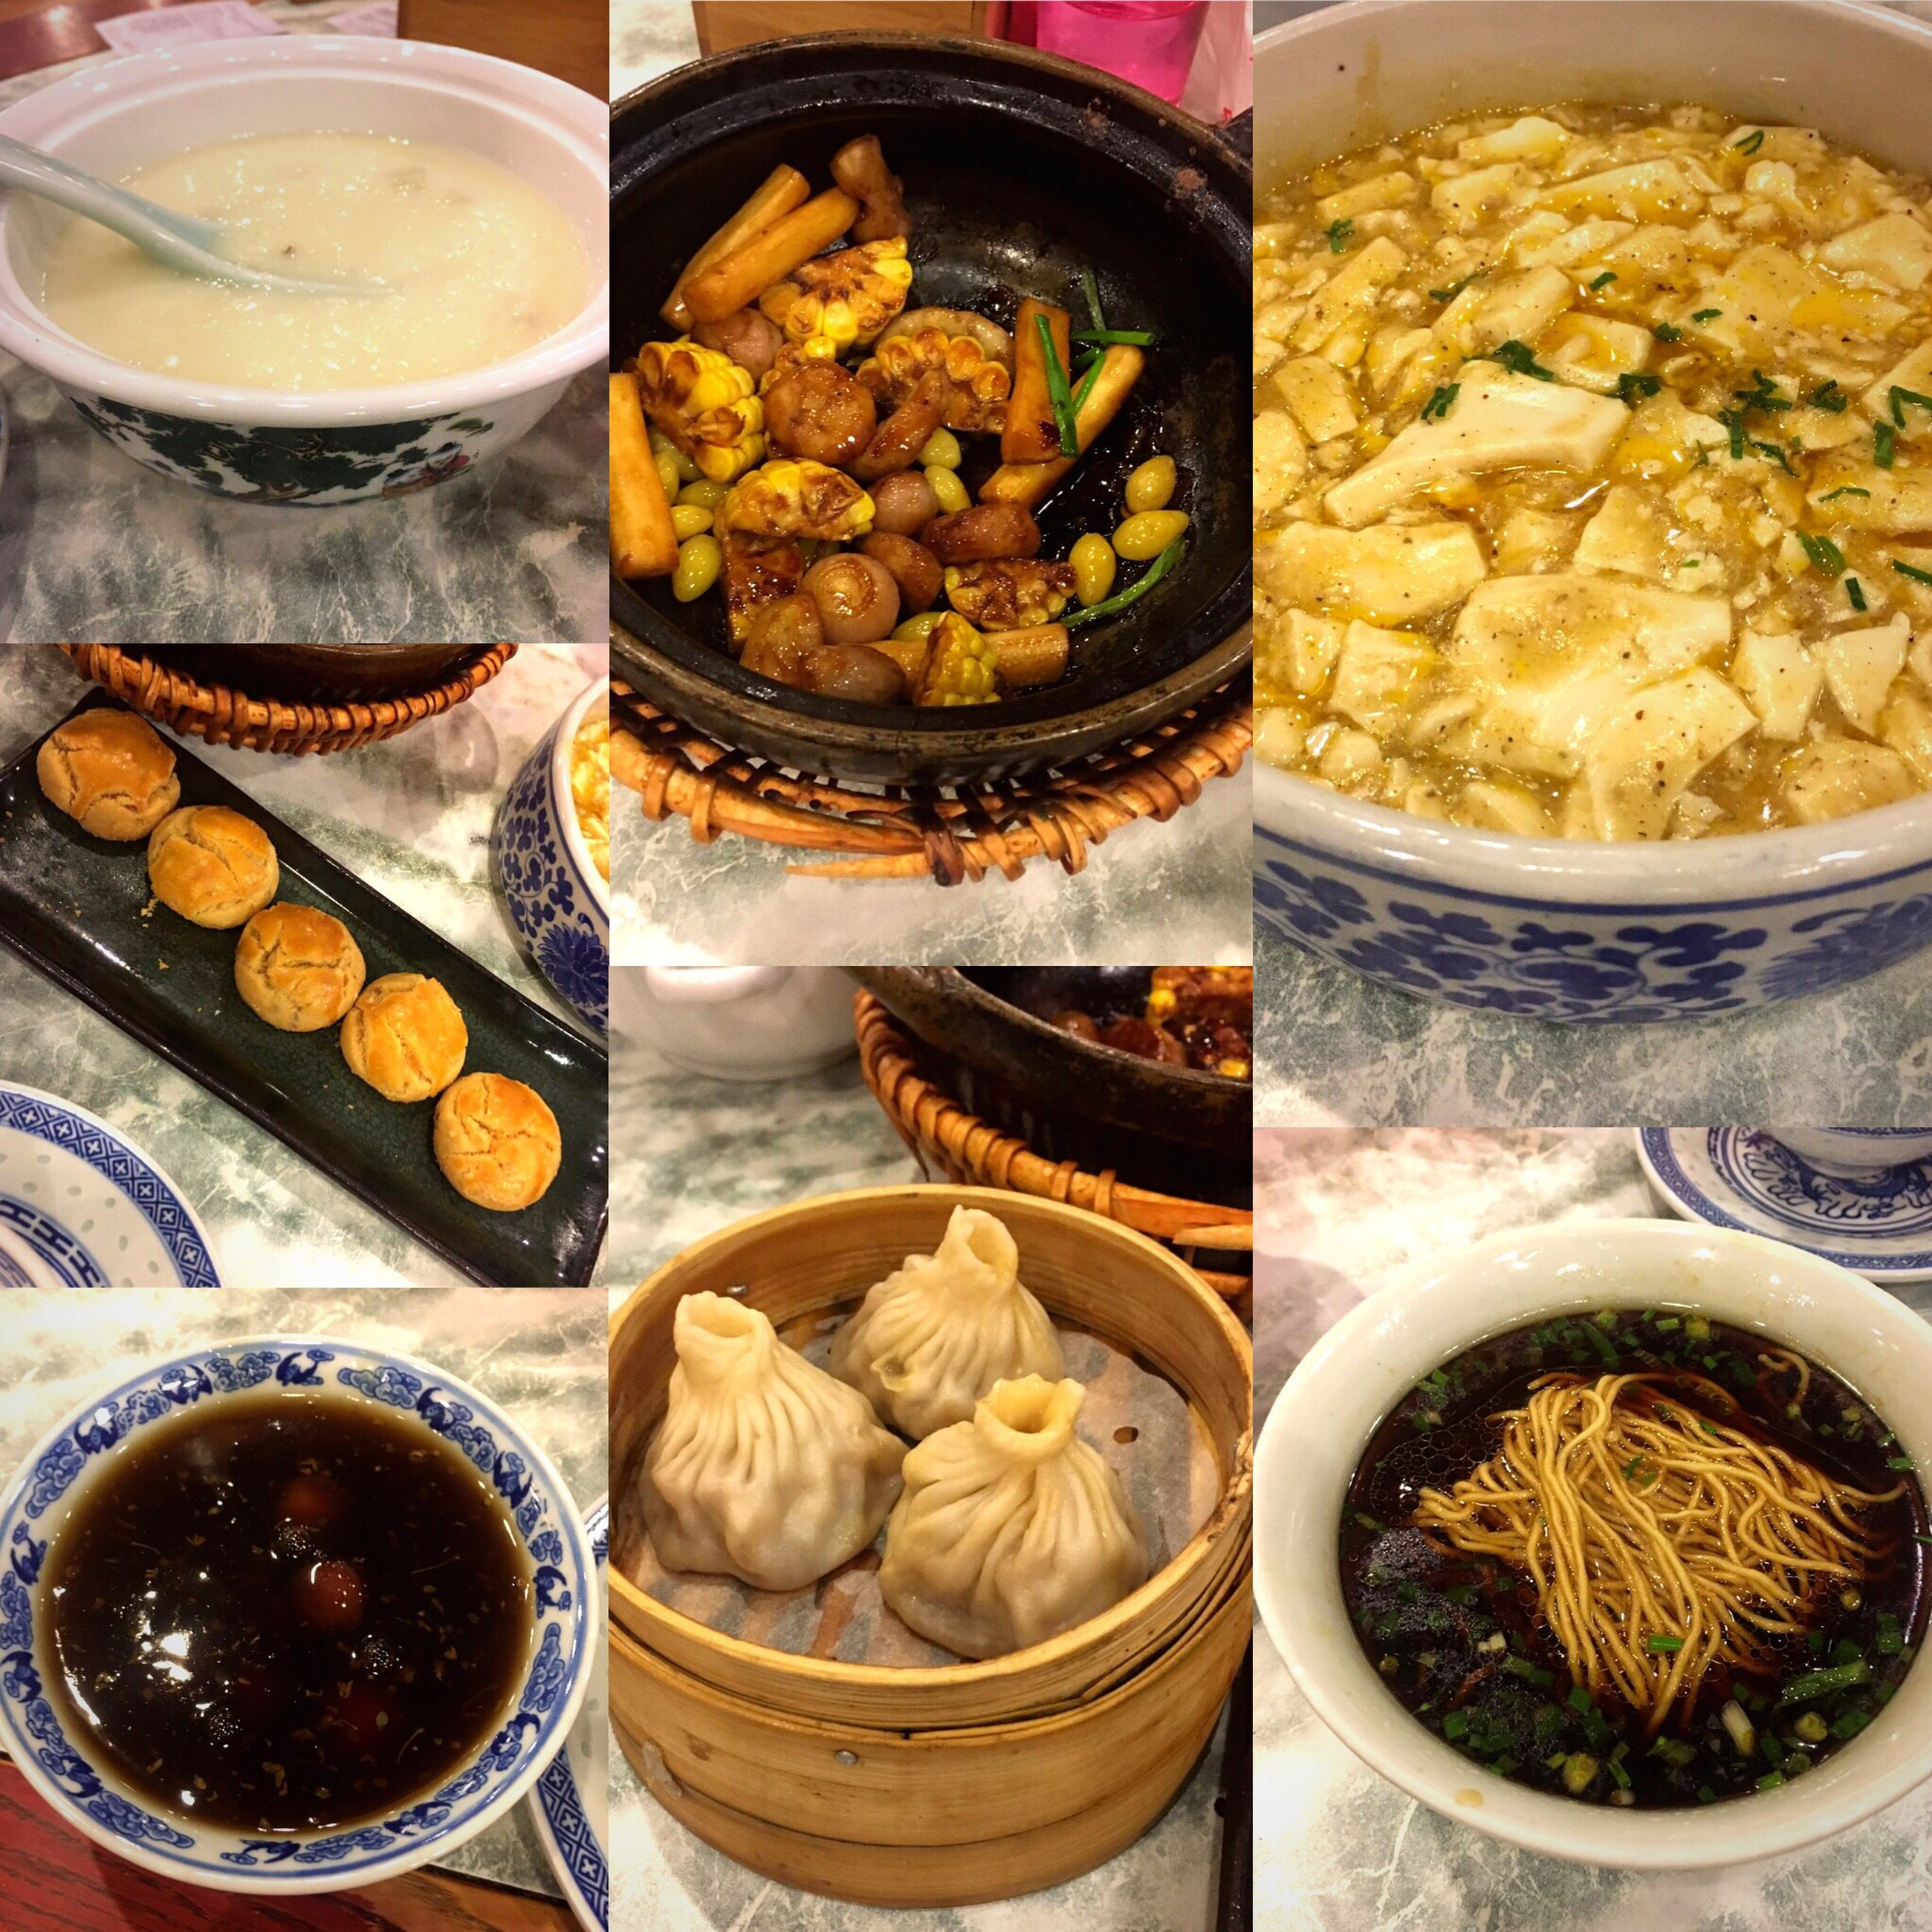 food and drink, food, variation, freshness, ready-to-eat, bowl, healthy eating, no people, chinese dumpling, indoors, collage, dumpling, dim sum, close-up, day